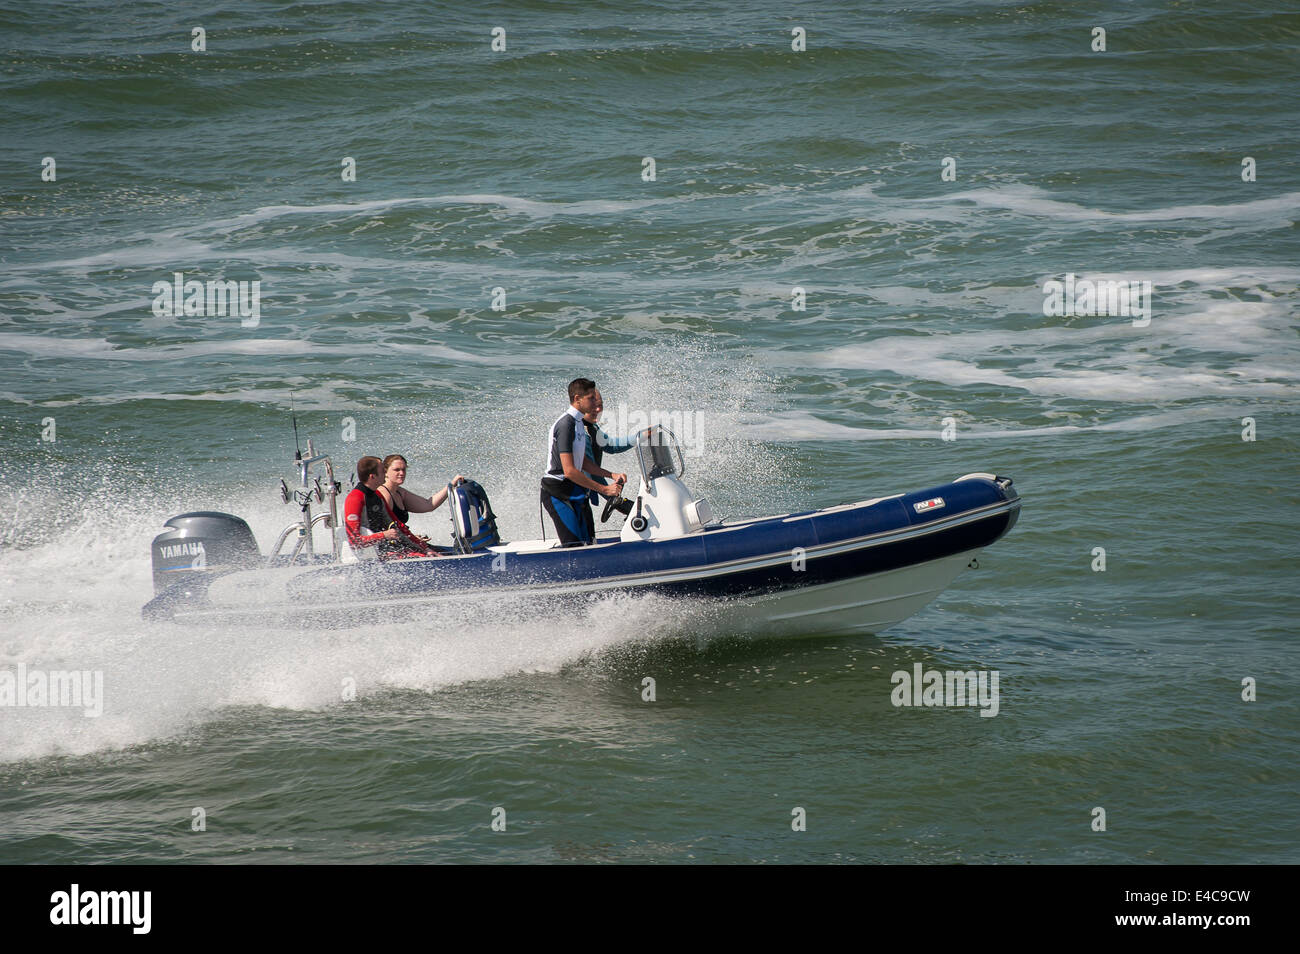 Speedboat with an outboard motor on the Solent, England. - Stock Image